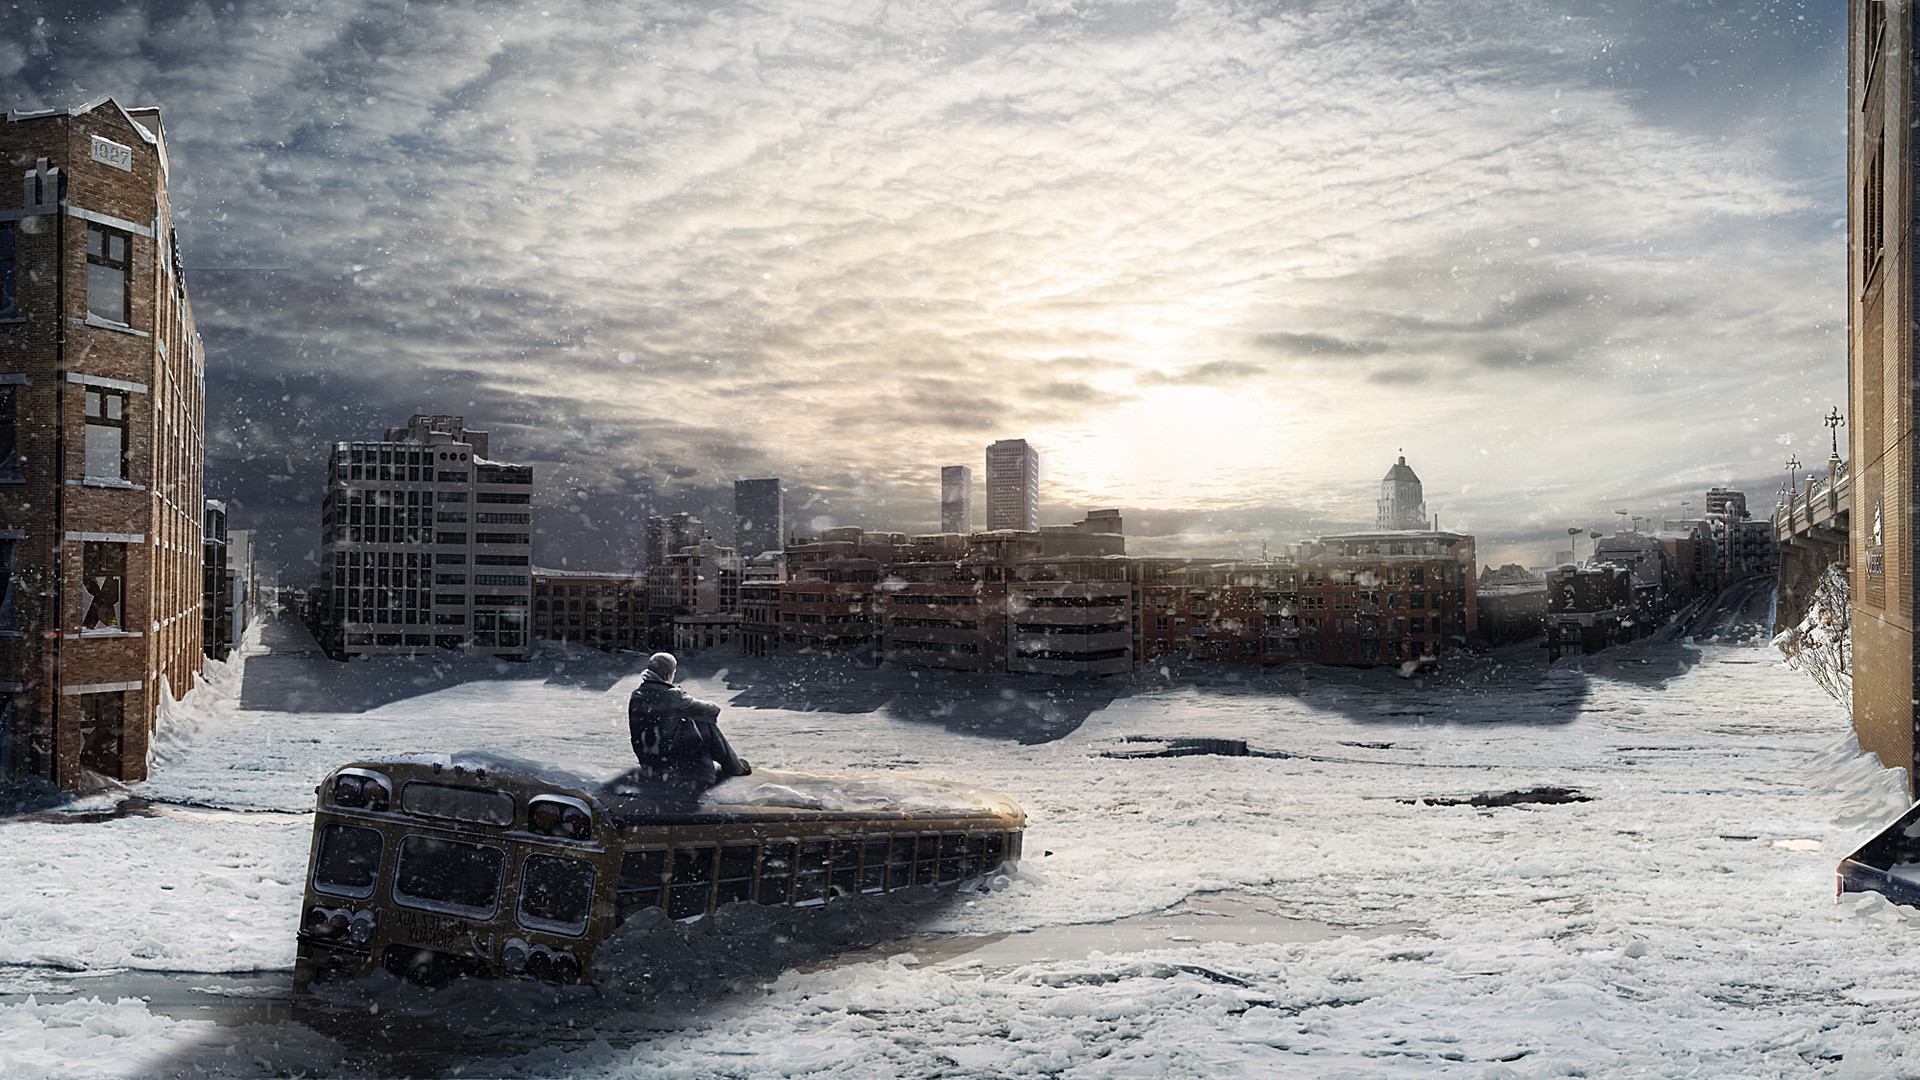 Apocalypse apocalyptic winter snow city wallpaper | | 125679 |  WallpaperUP